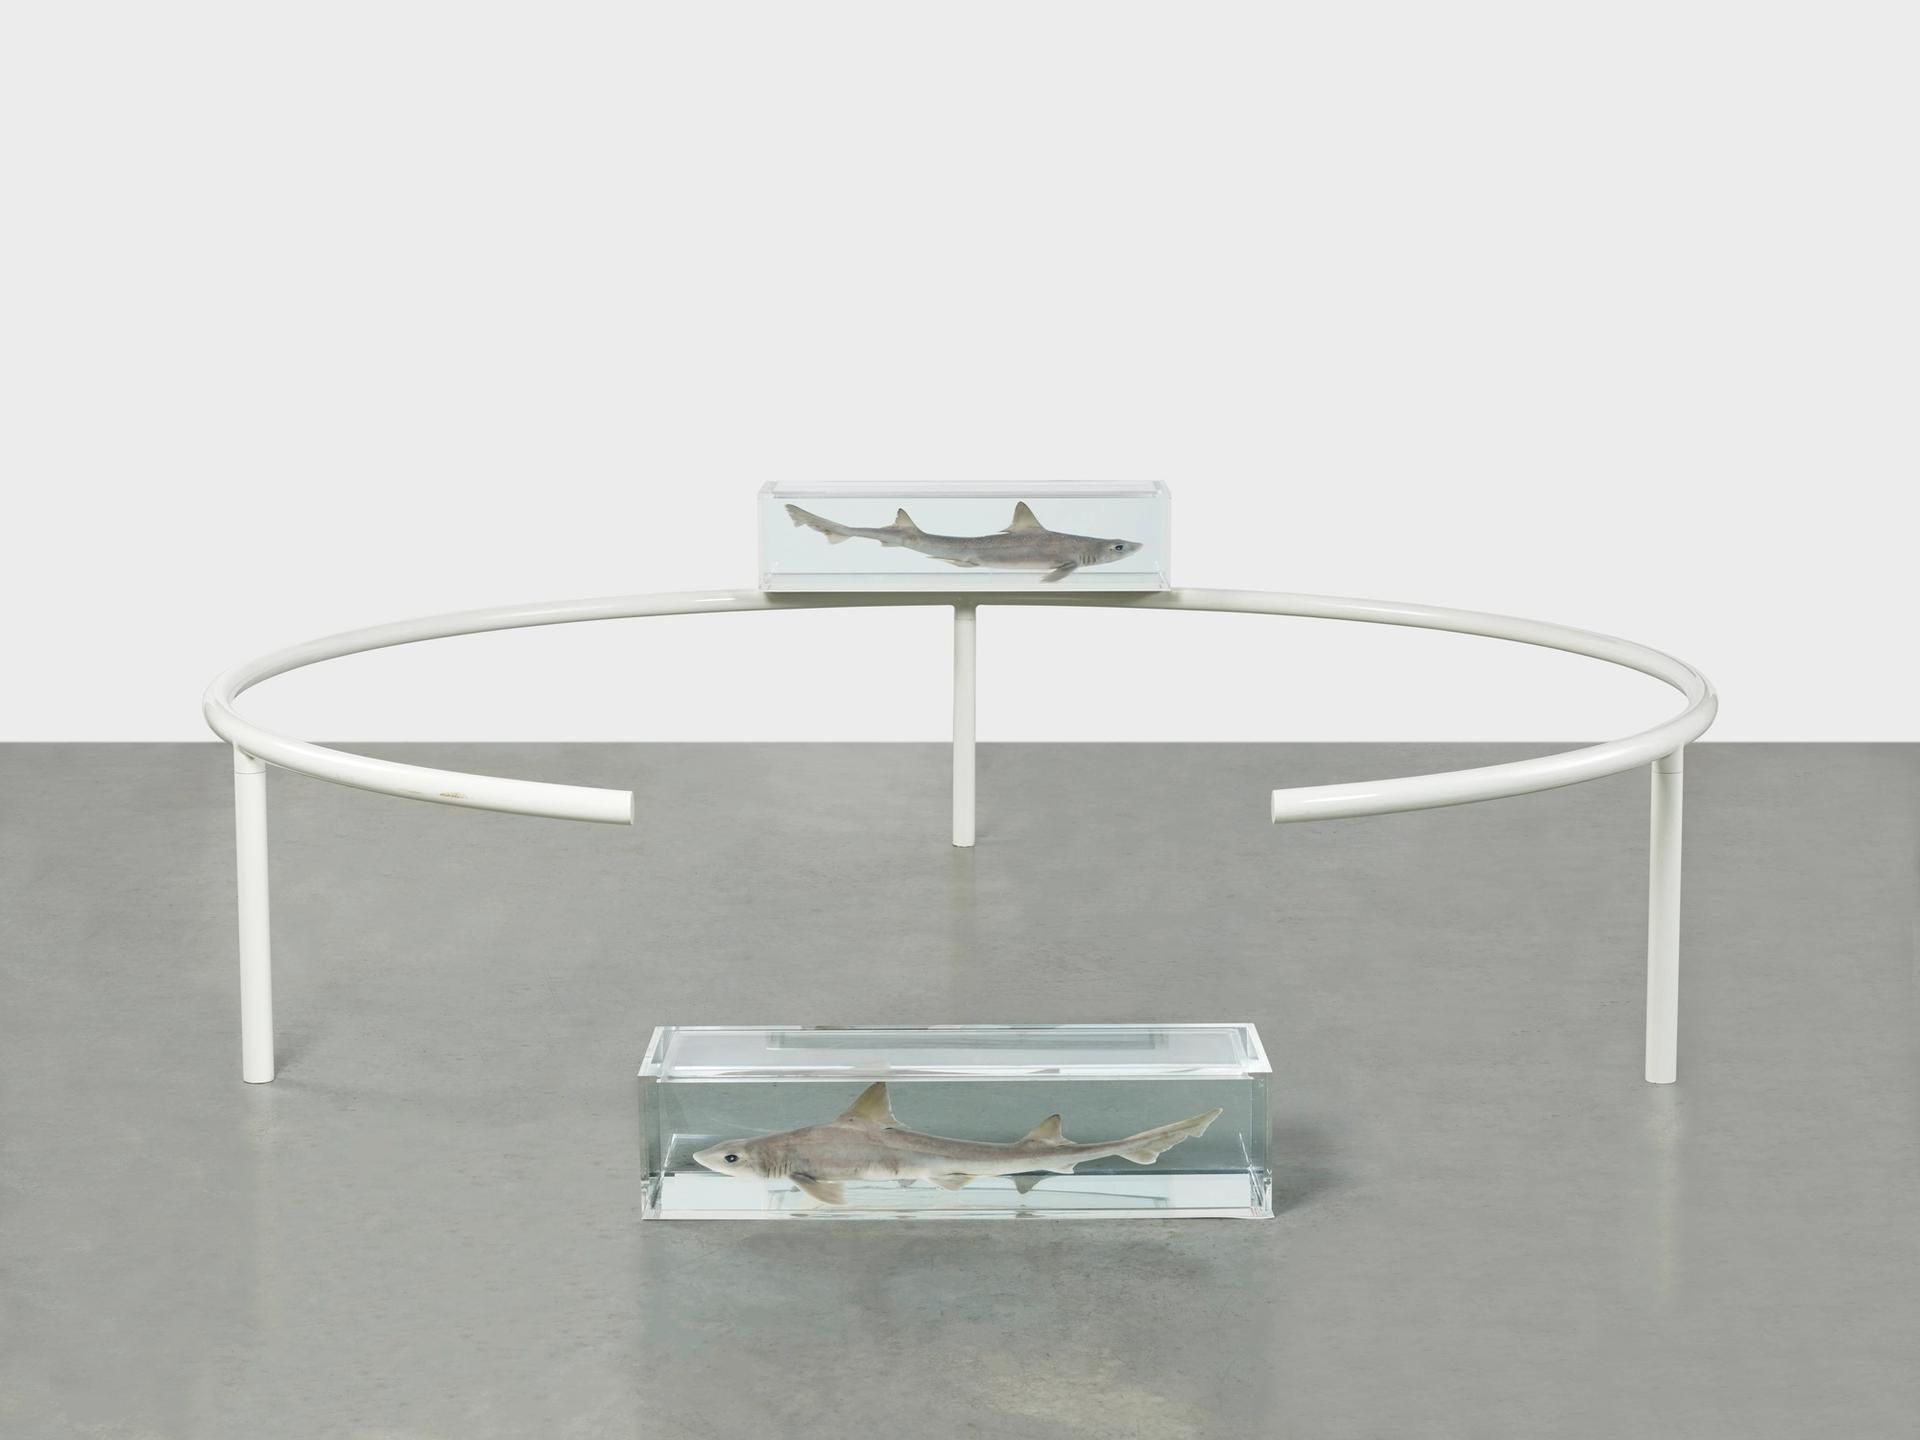 Two Similar Swimming Forms in Infinite Flight (Broken), (1993) Photographed by Prudence Cuming Associates. ©Damien Hirst and Science Ltd. All rights reserved, DACS 2020